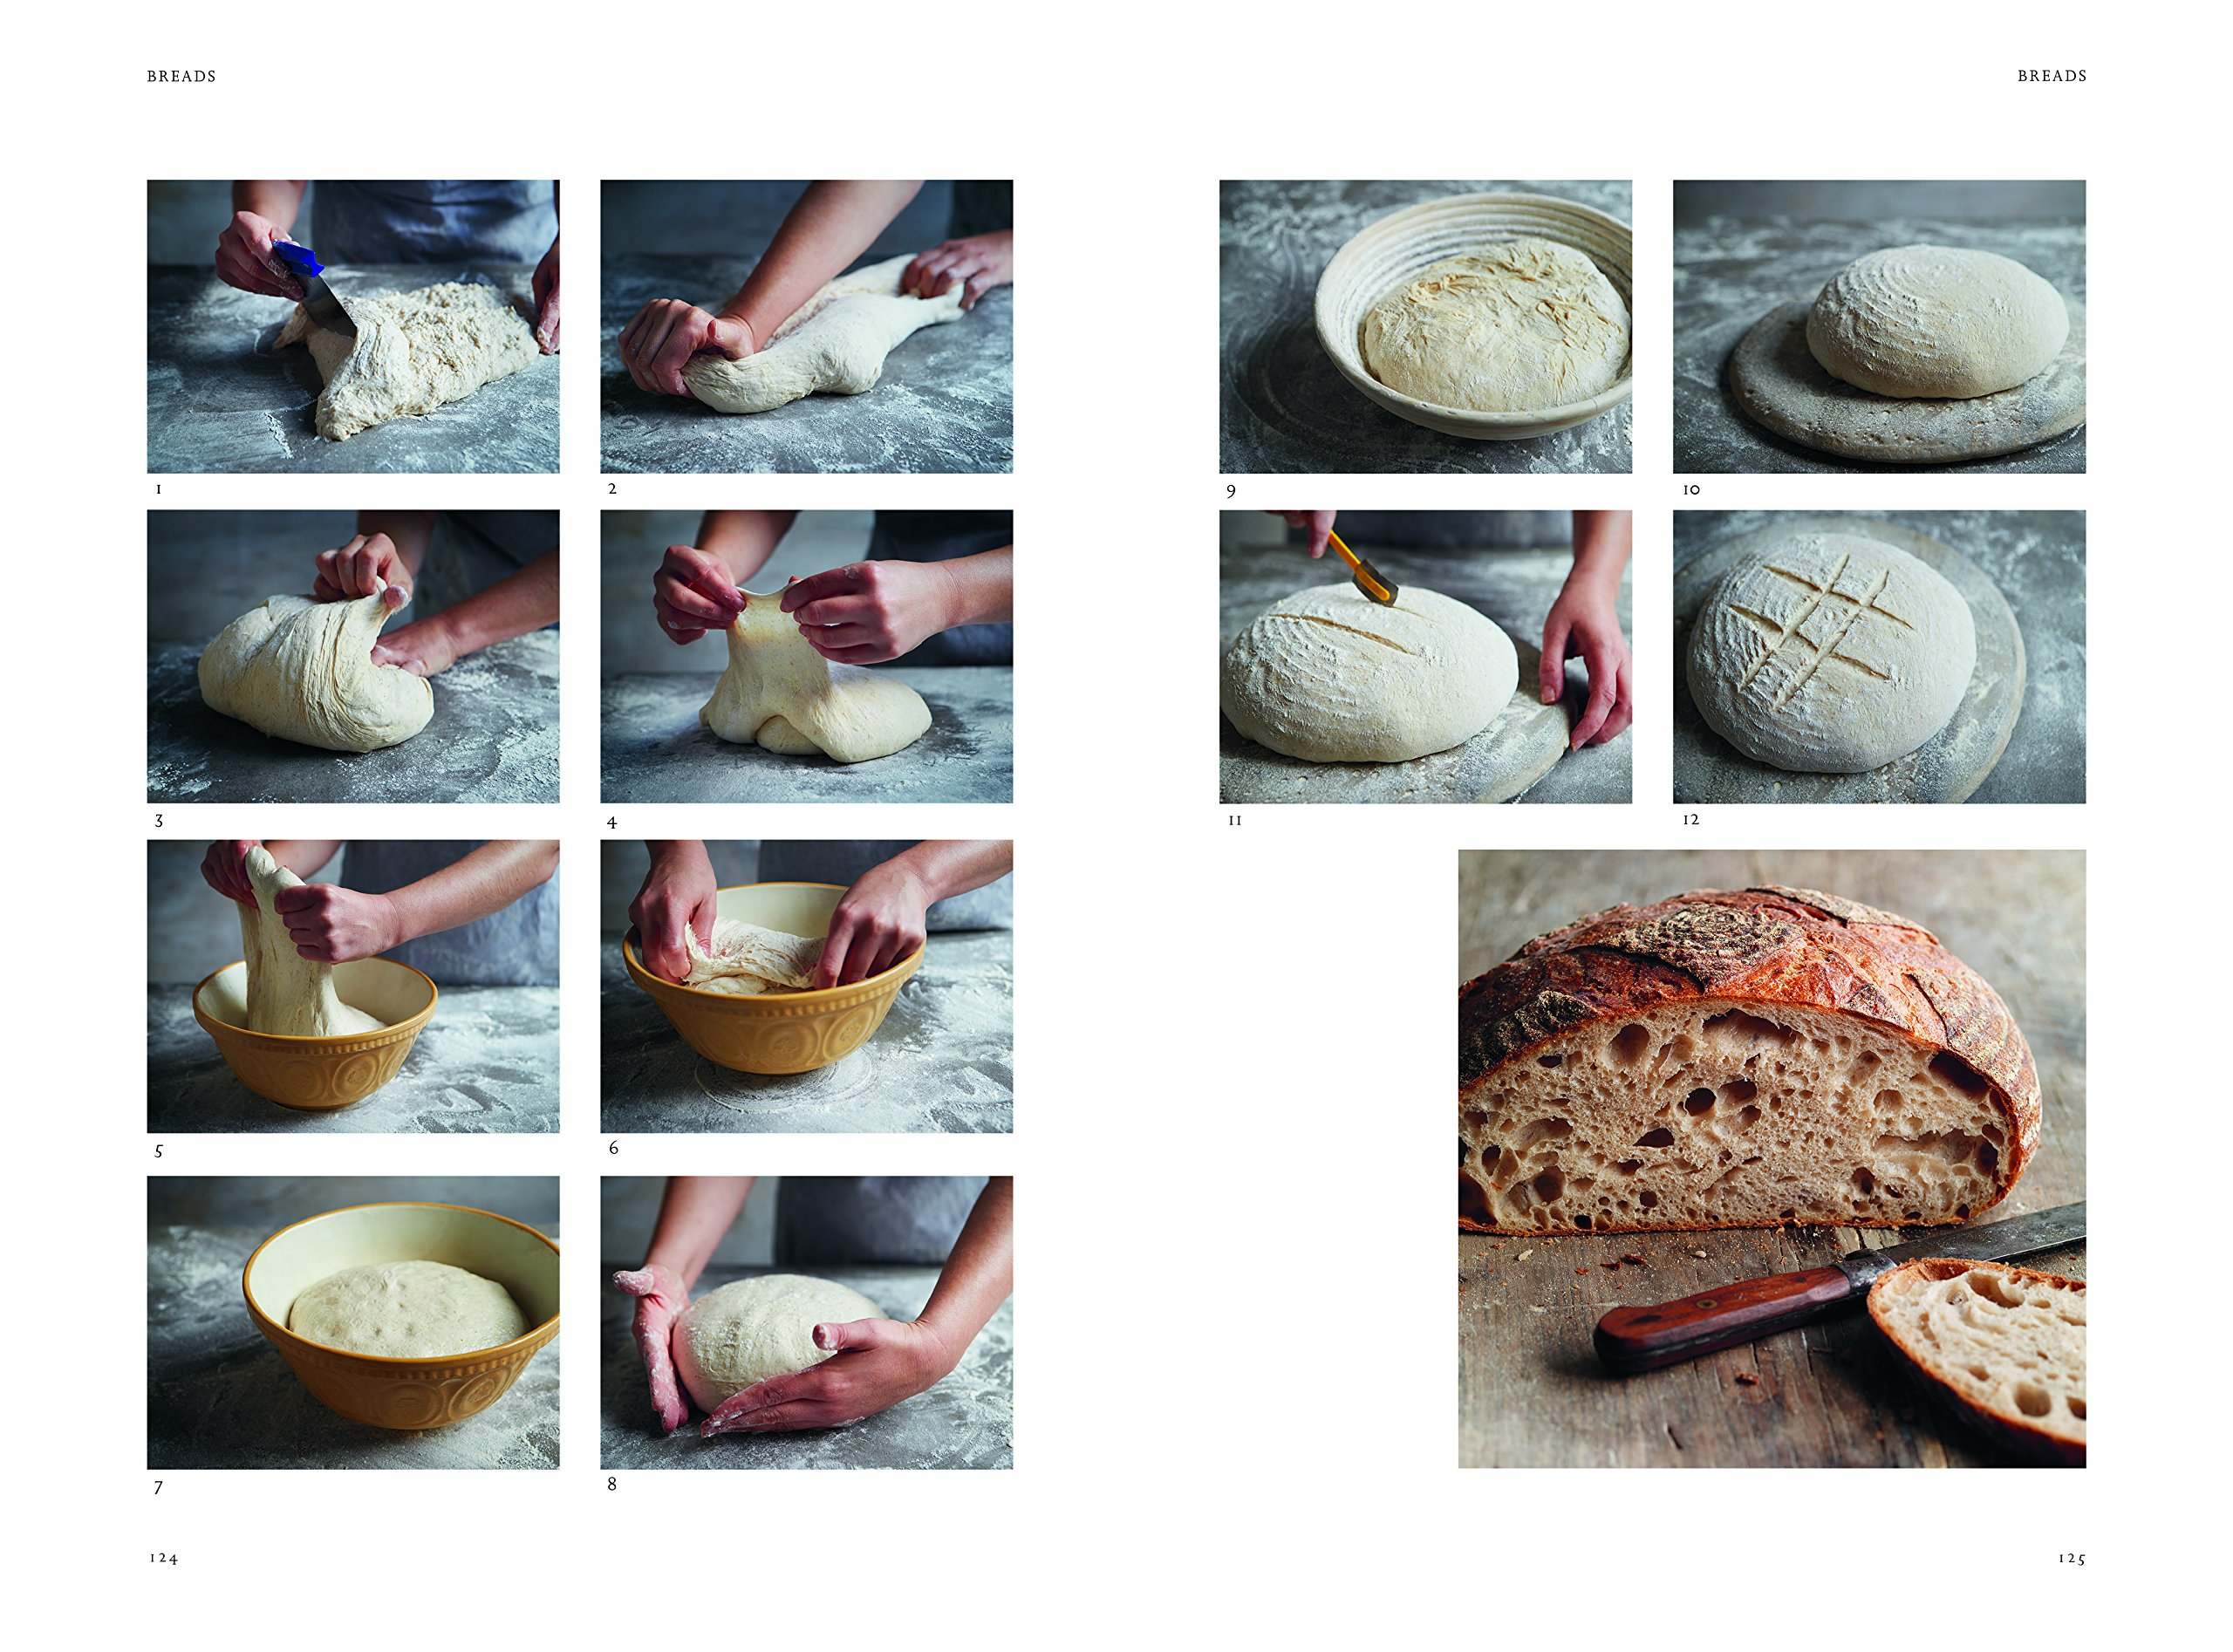 A handful of flour recipes from shipton mill amazon tess a handful of flour recipes from shipton mill amazon tess lister 9781472233370 books forumfinder Images